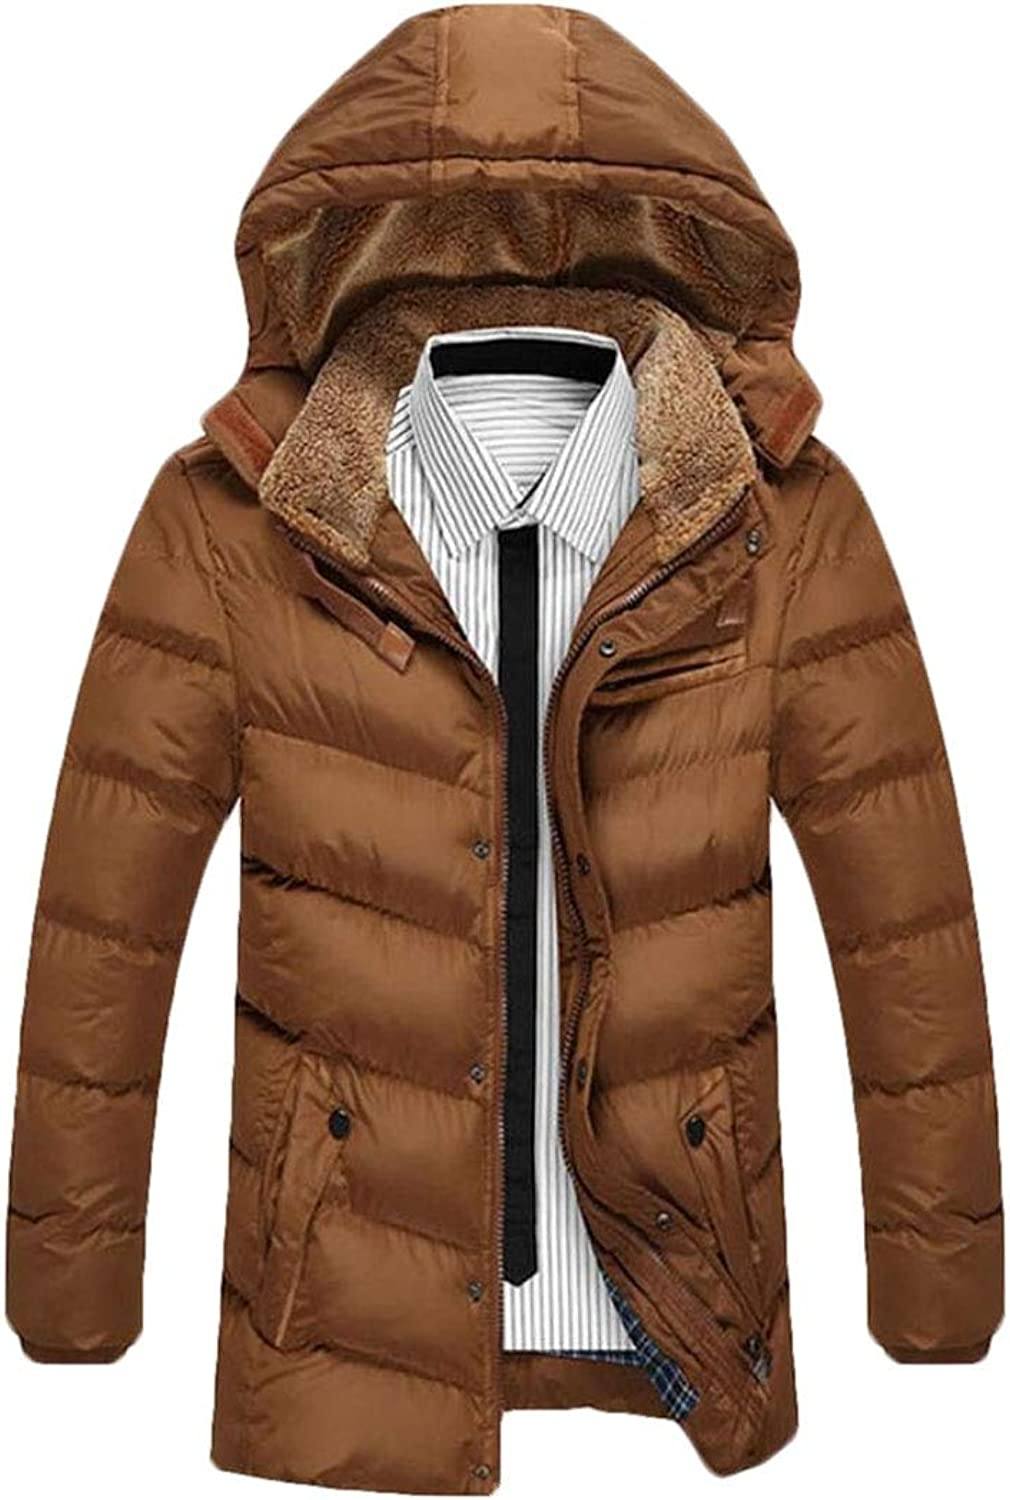 Men's Winter Thicken Puffer Coat Fleece Line Hood Down Jacket